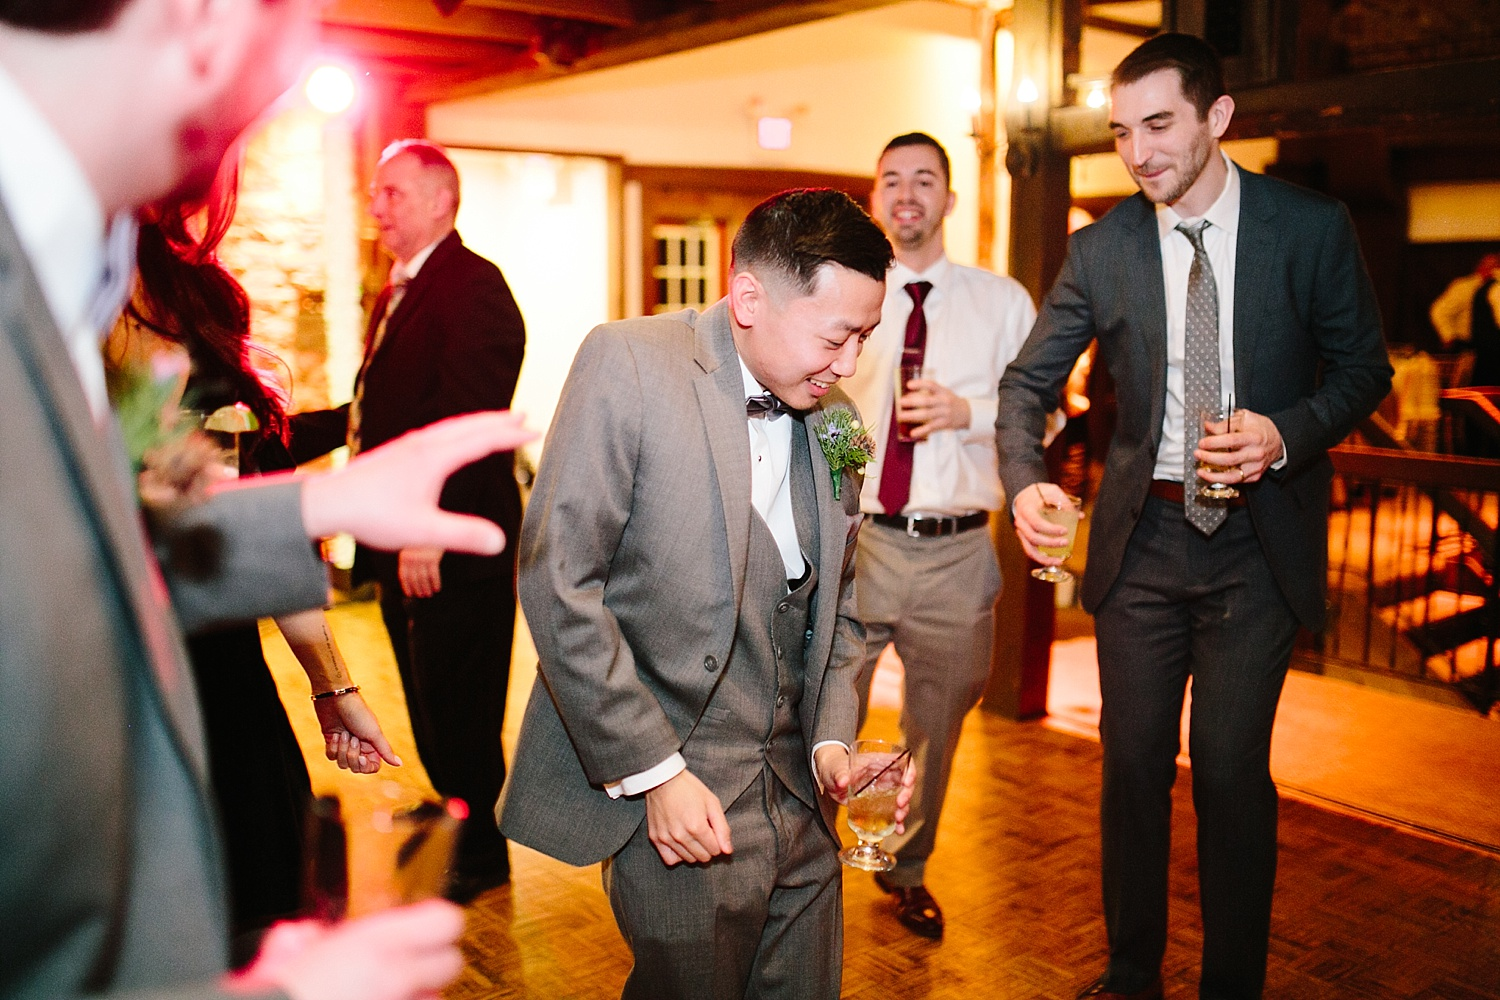 jessdavid_barnonbridge_phoenixville_winter_wedding_image_110.jpg